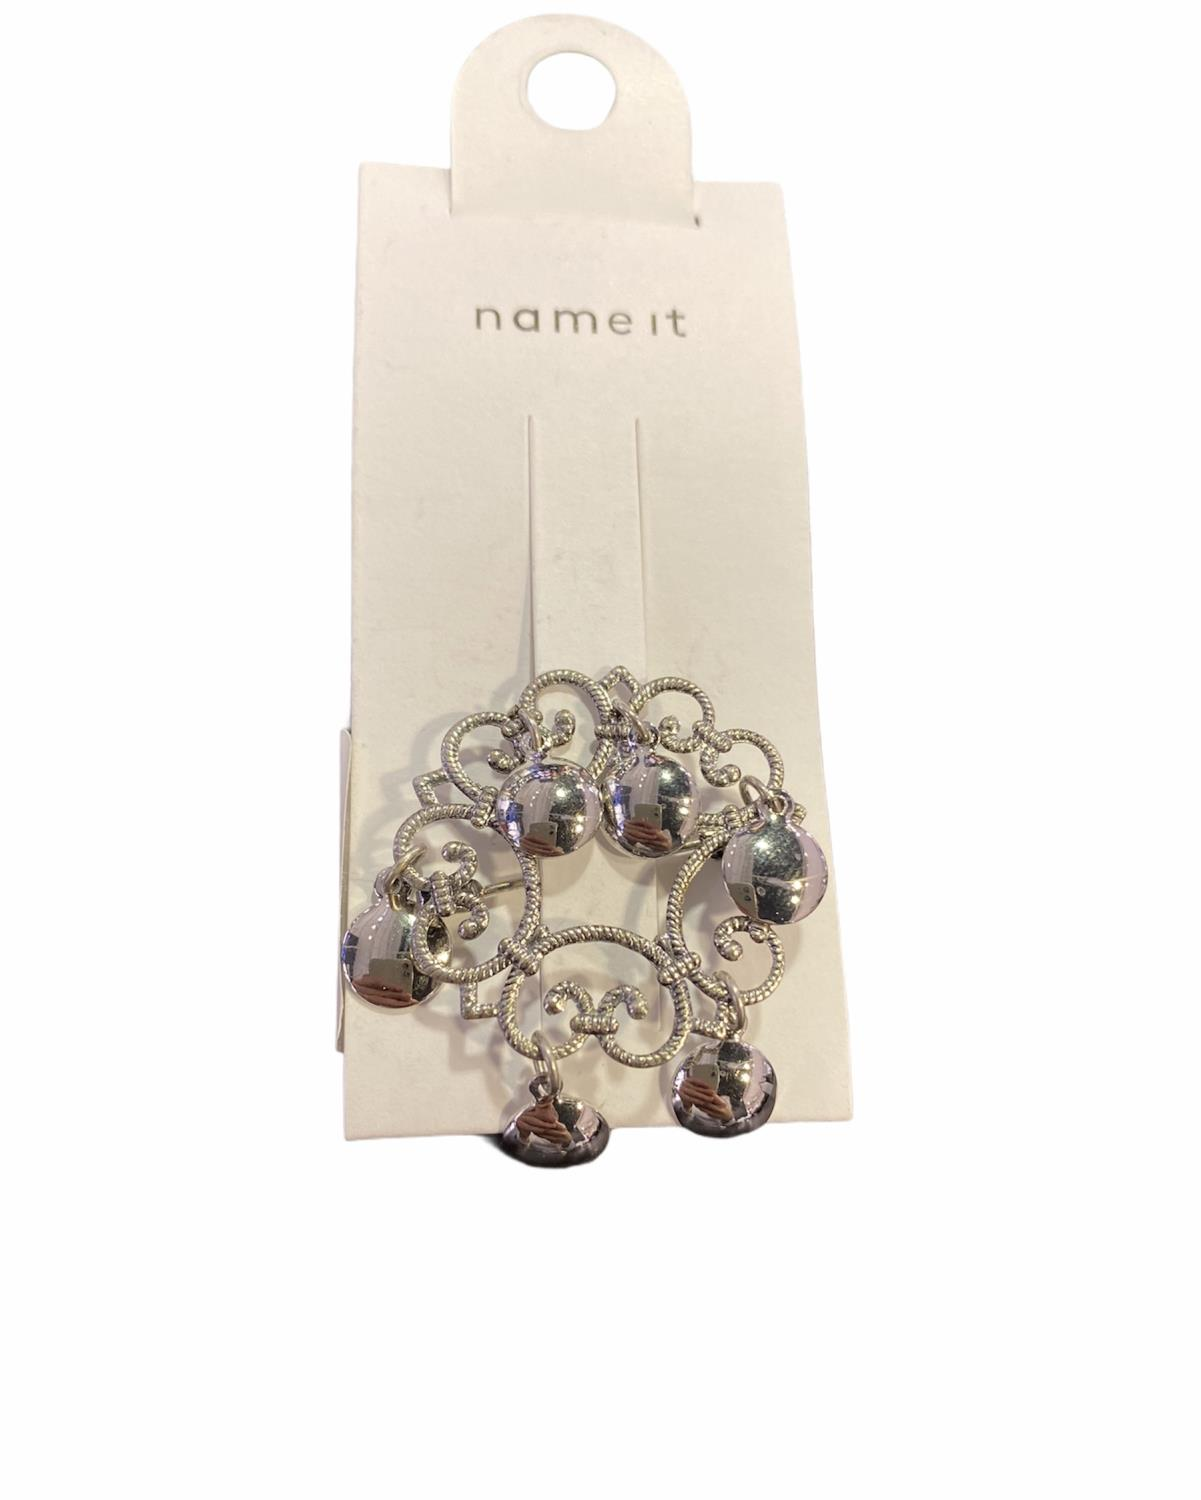 TRIL BROOCH - NAME IT